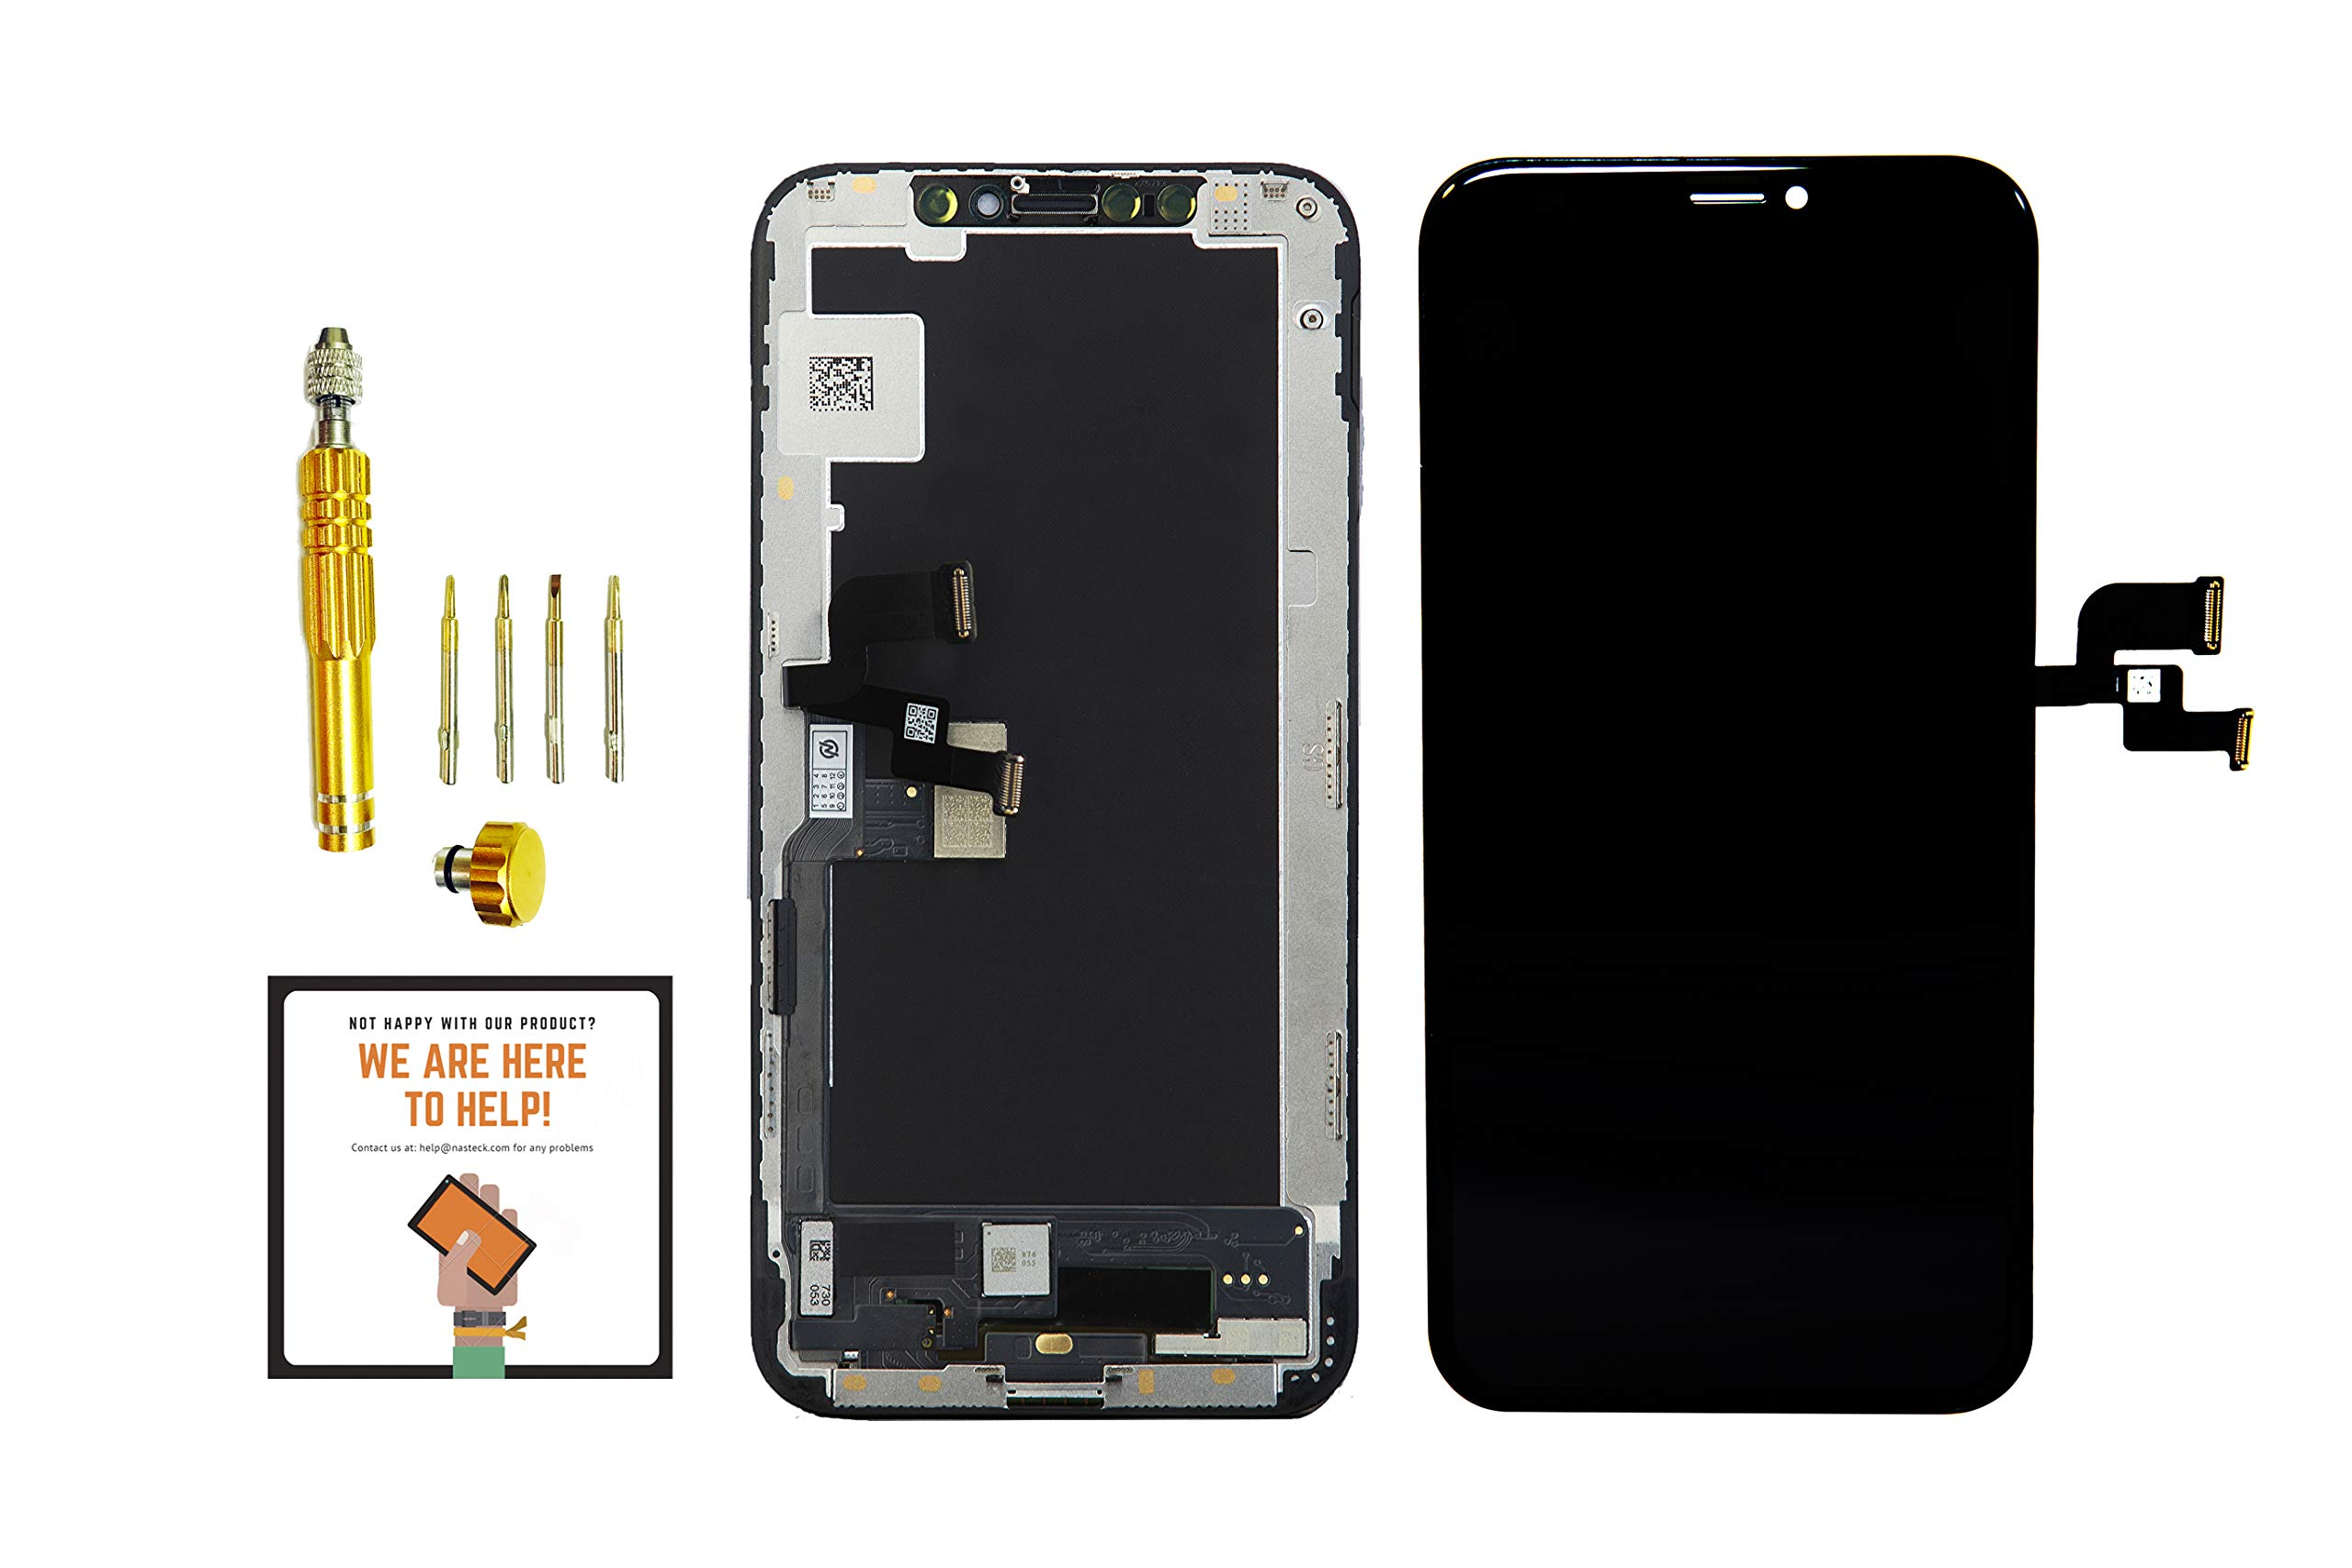 for iPhone Xs AMOLED OLED Screen Replacement Touch Digitizer (5.8'') [NOT LCD] Replacement Frame Assembly Black for iPhone Xs A1920, A2097, A2098, A2100 with Professional Tool kit (Nasteck)